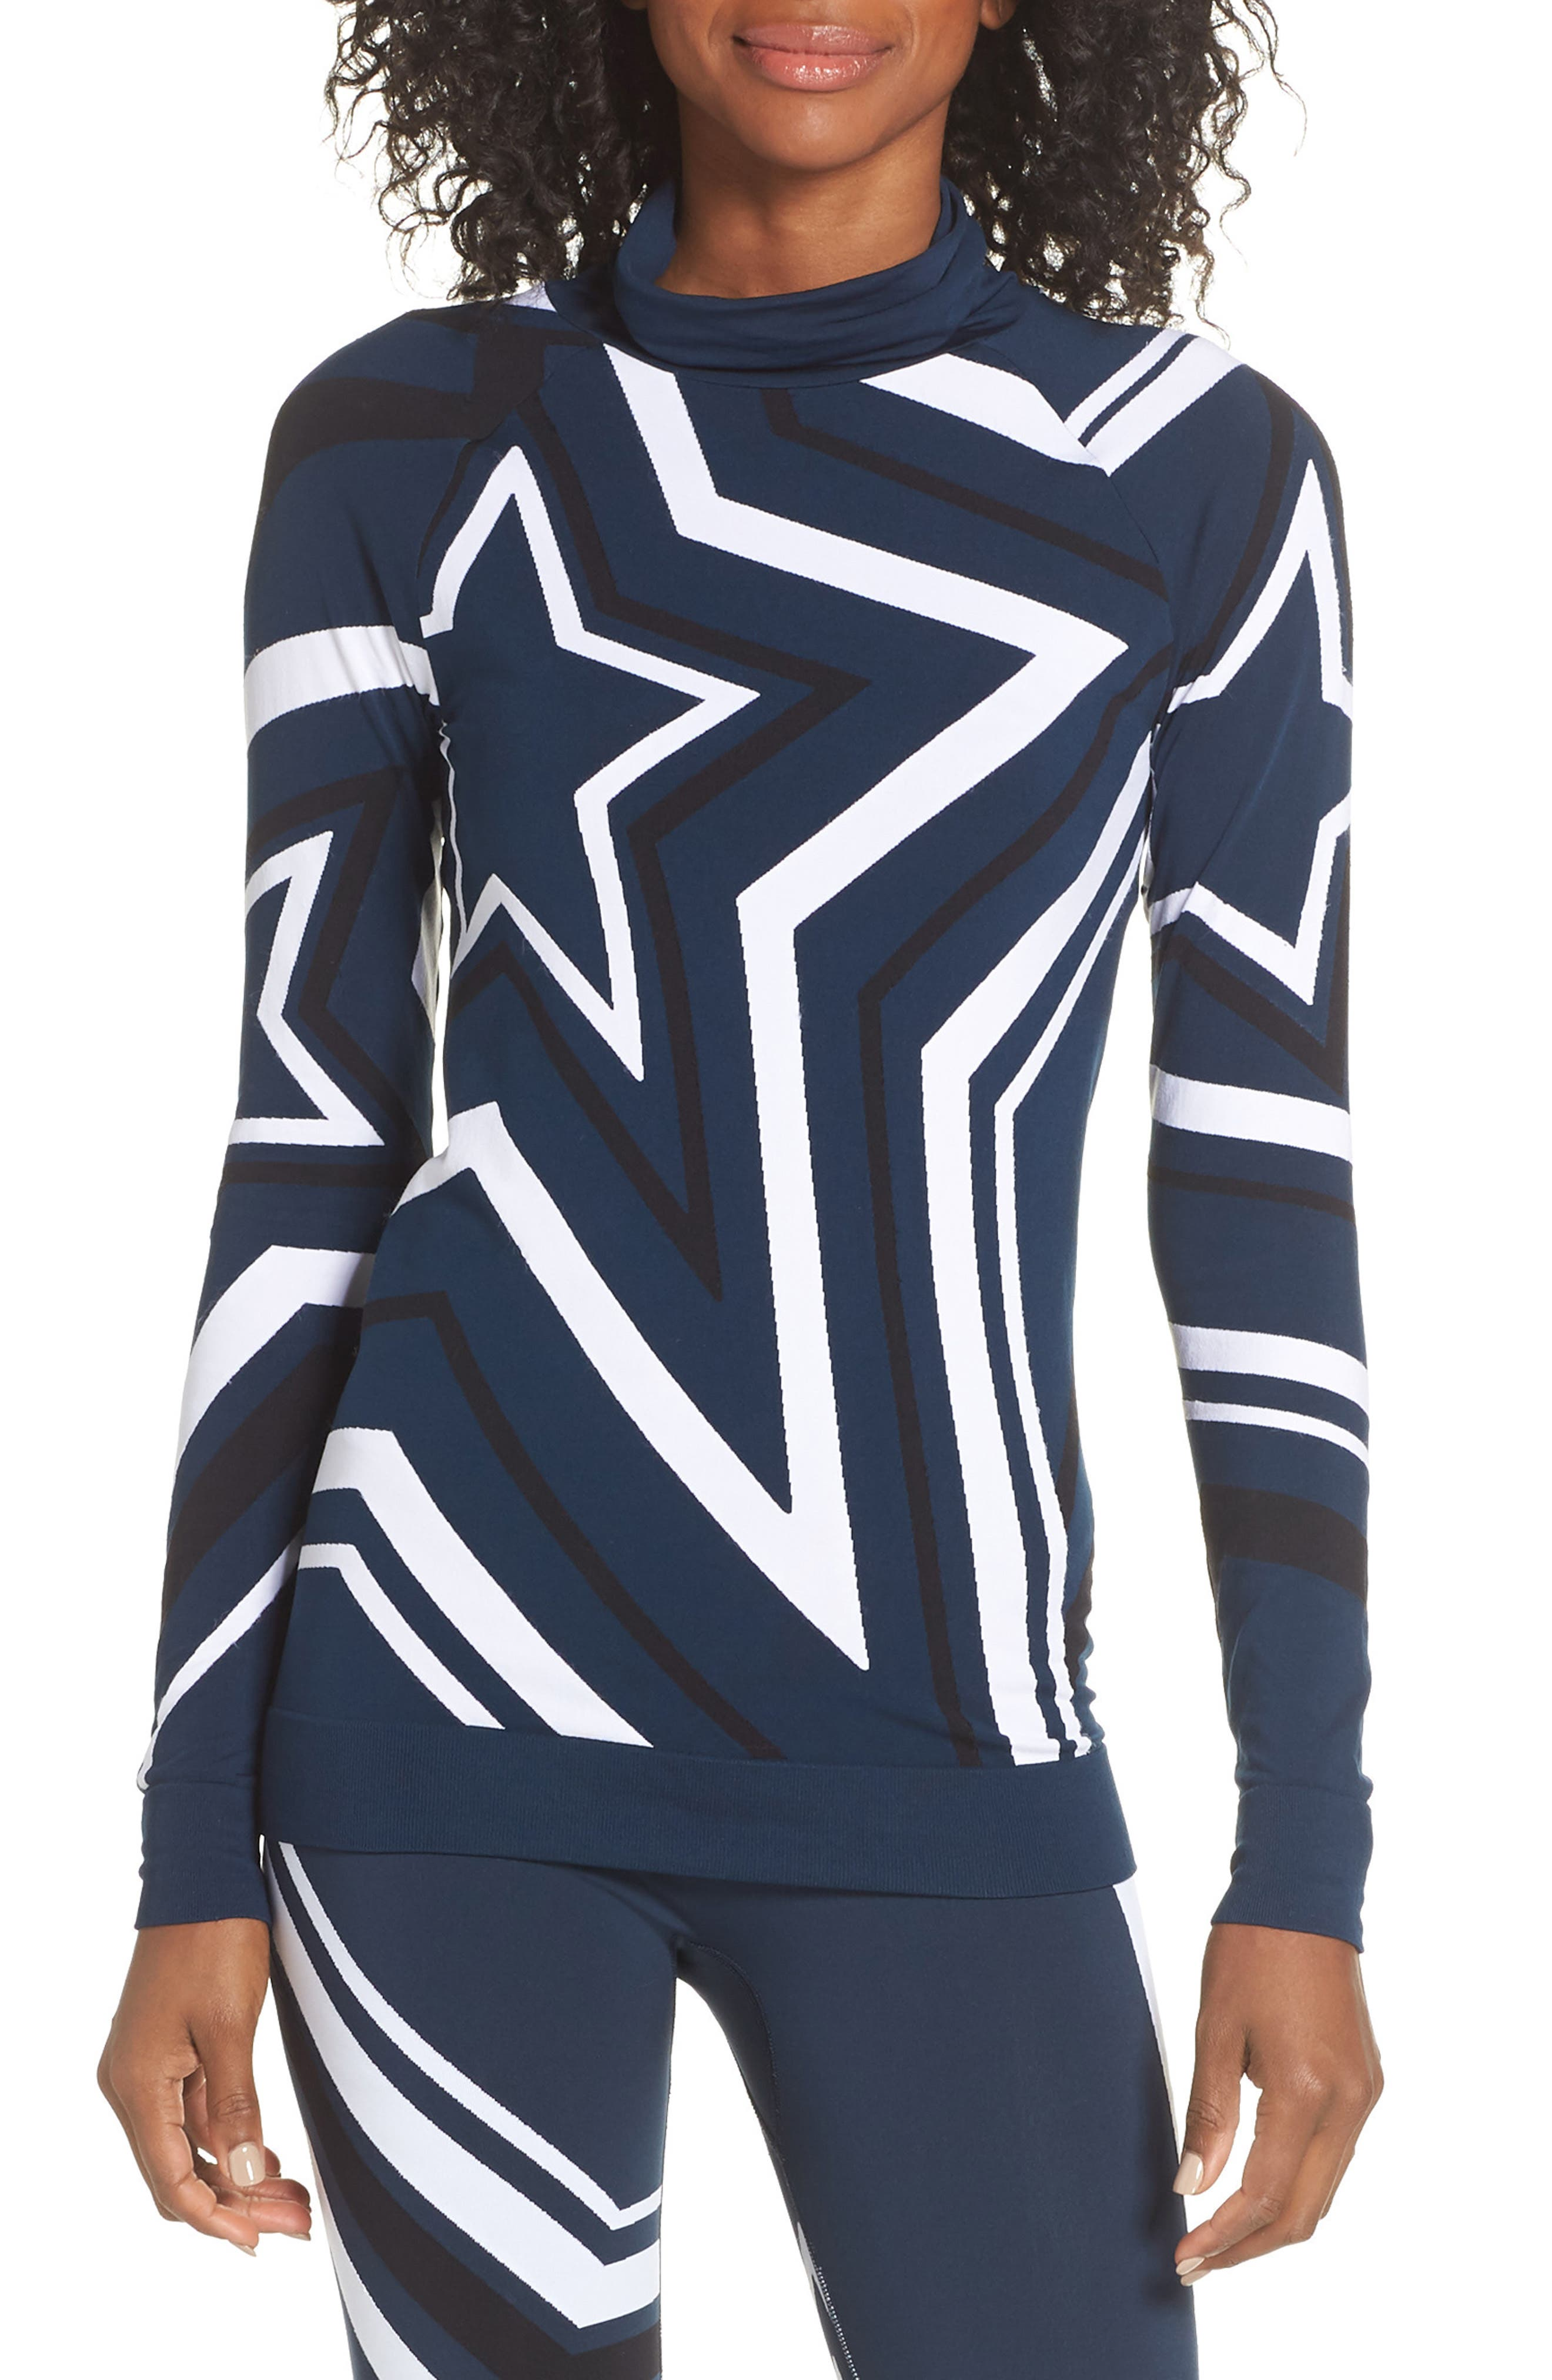 Festive Star Seamless Base Layer Top,                         Main,                         color, BEETLE BLUE STAR JACQUARD